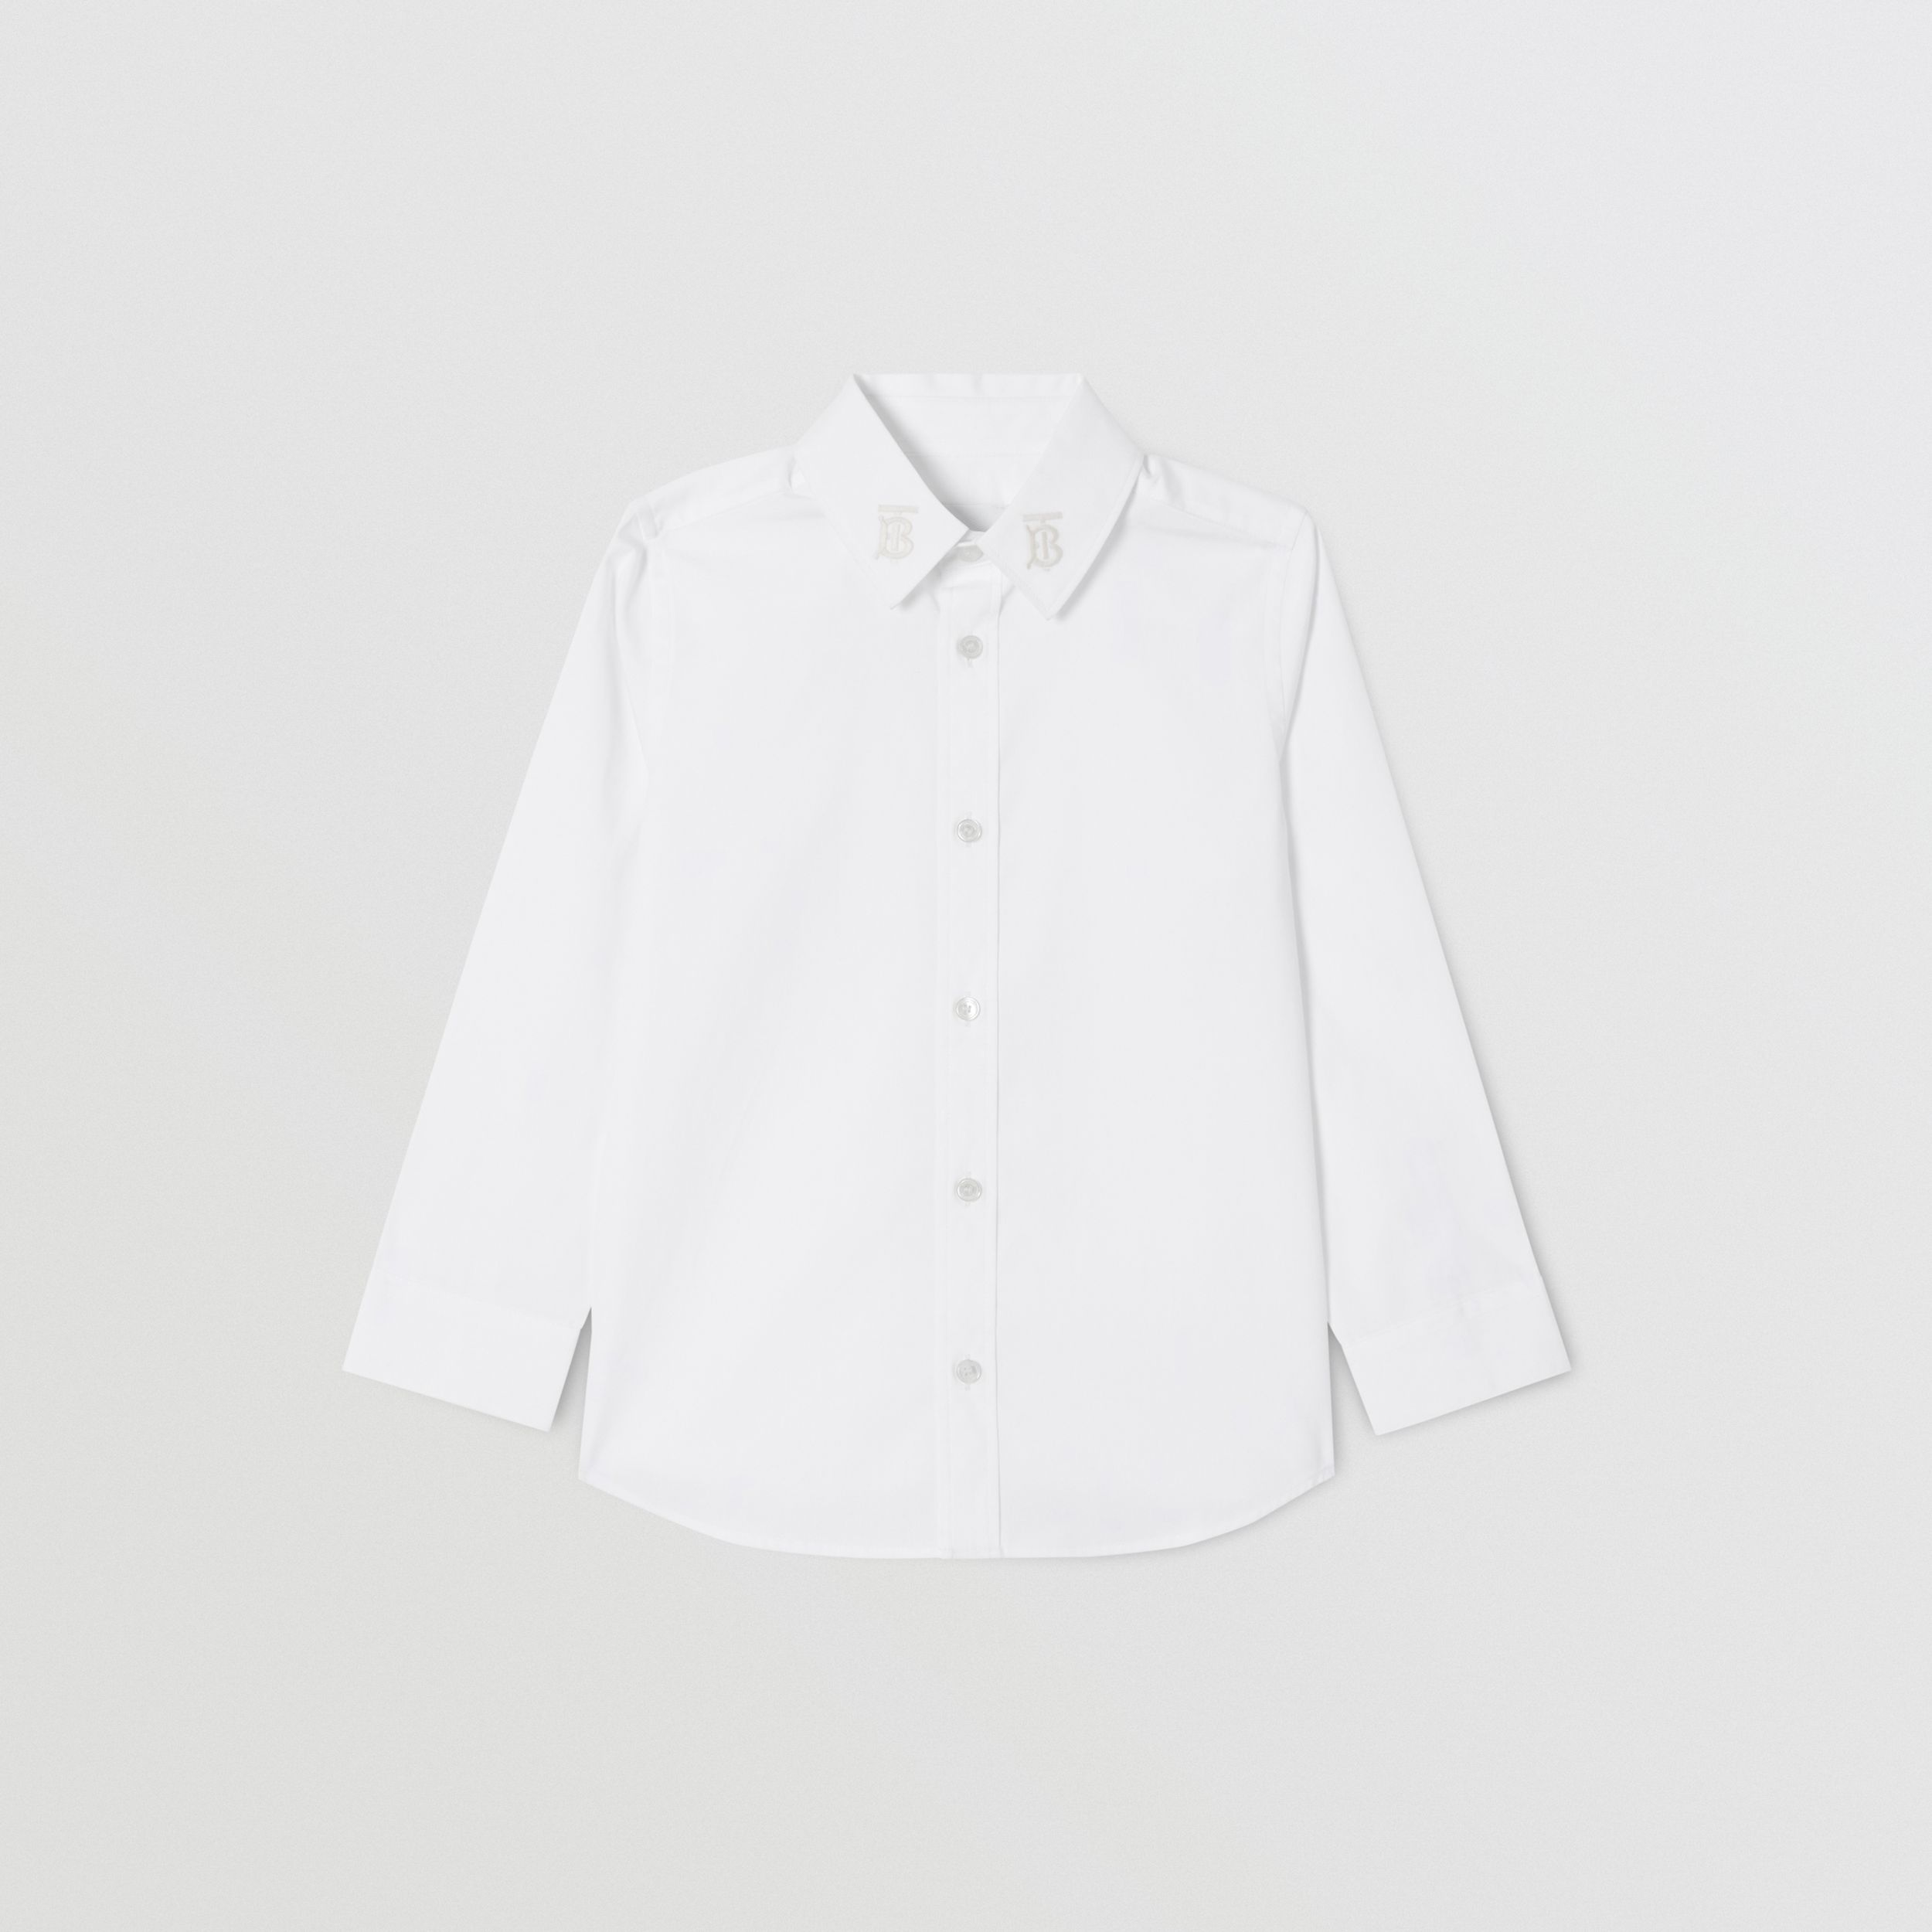 Monogram Motif Stretch Cotton Poplin Shirt | Burberry - 1